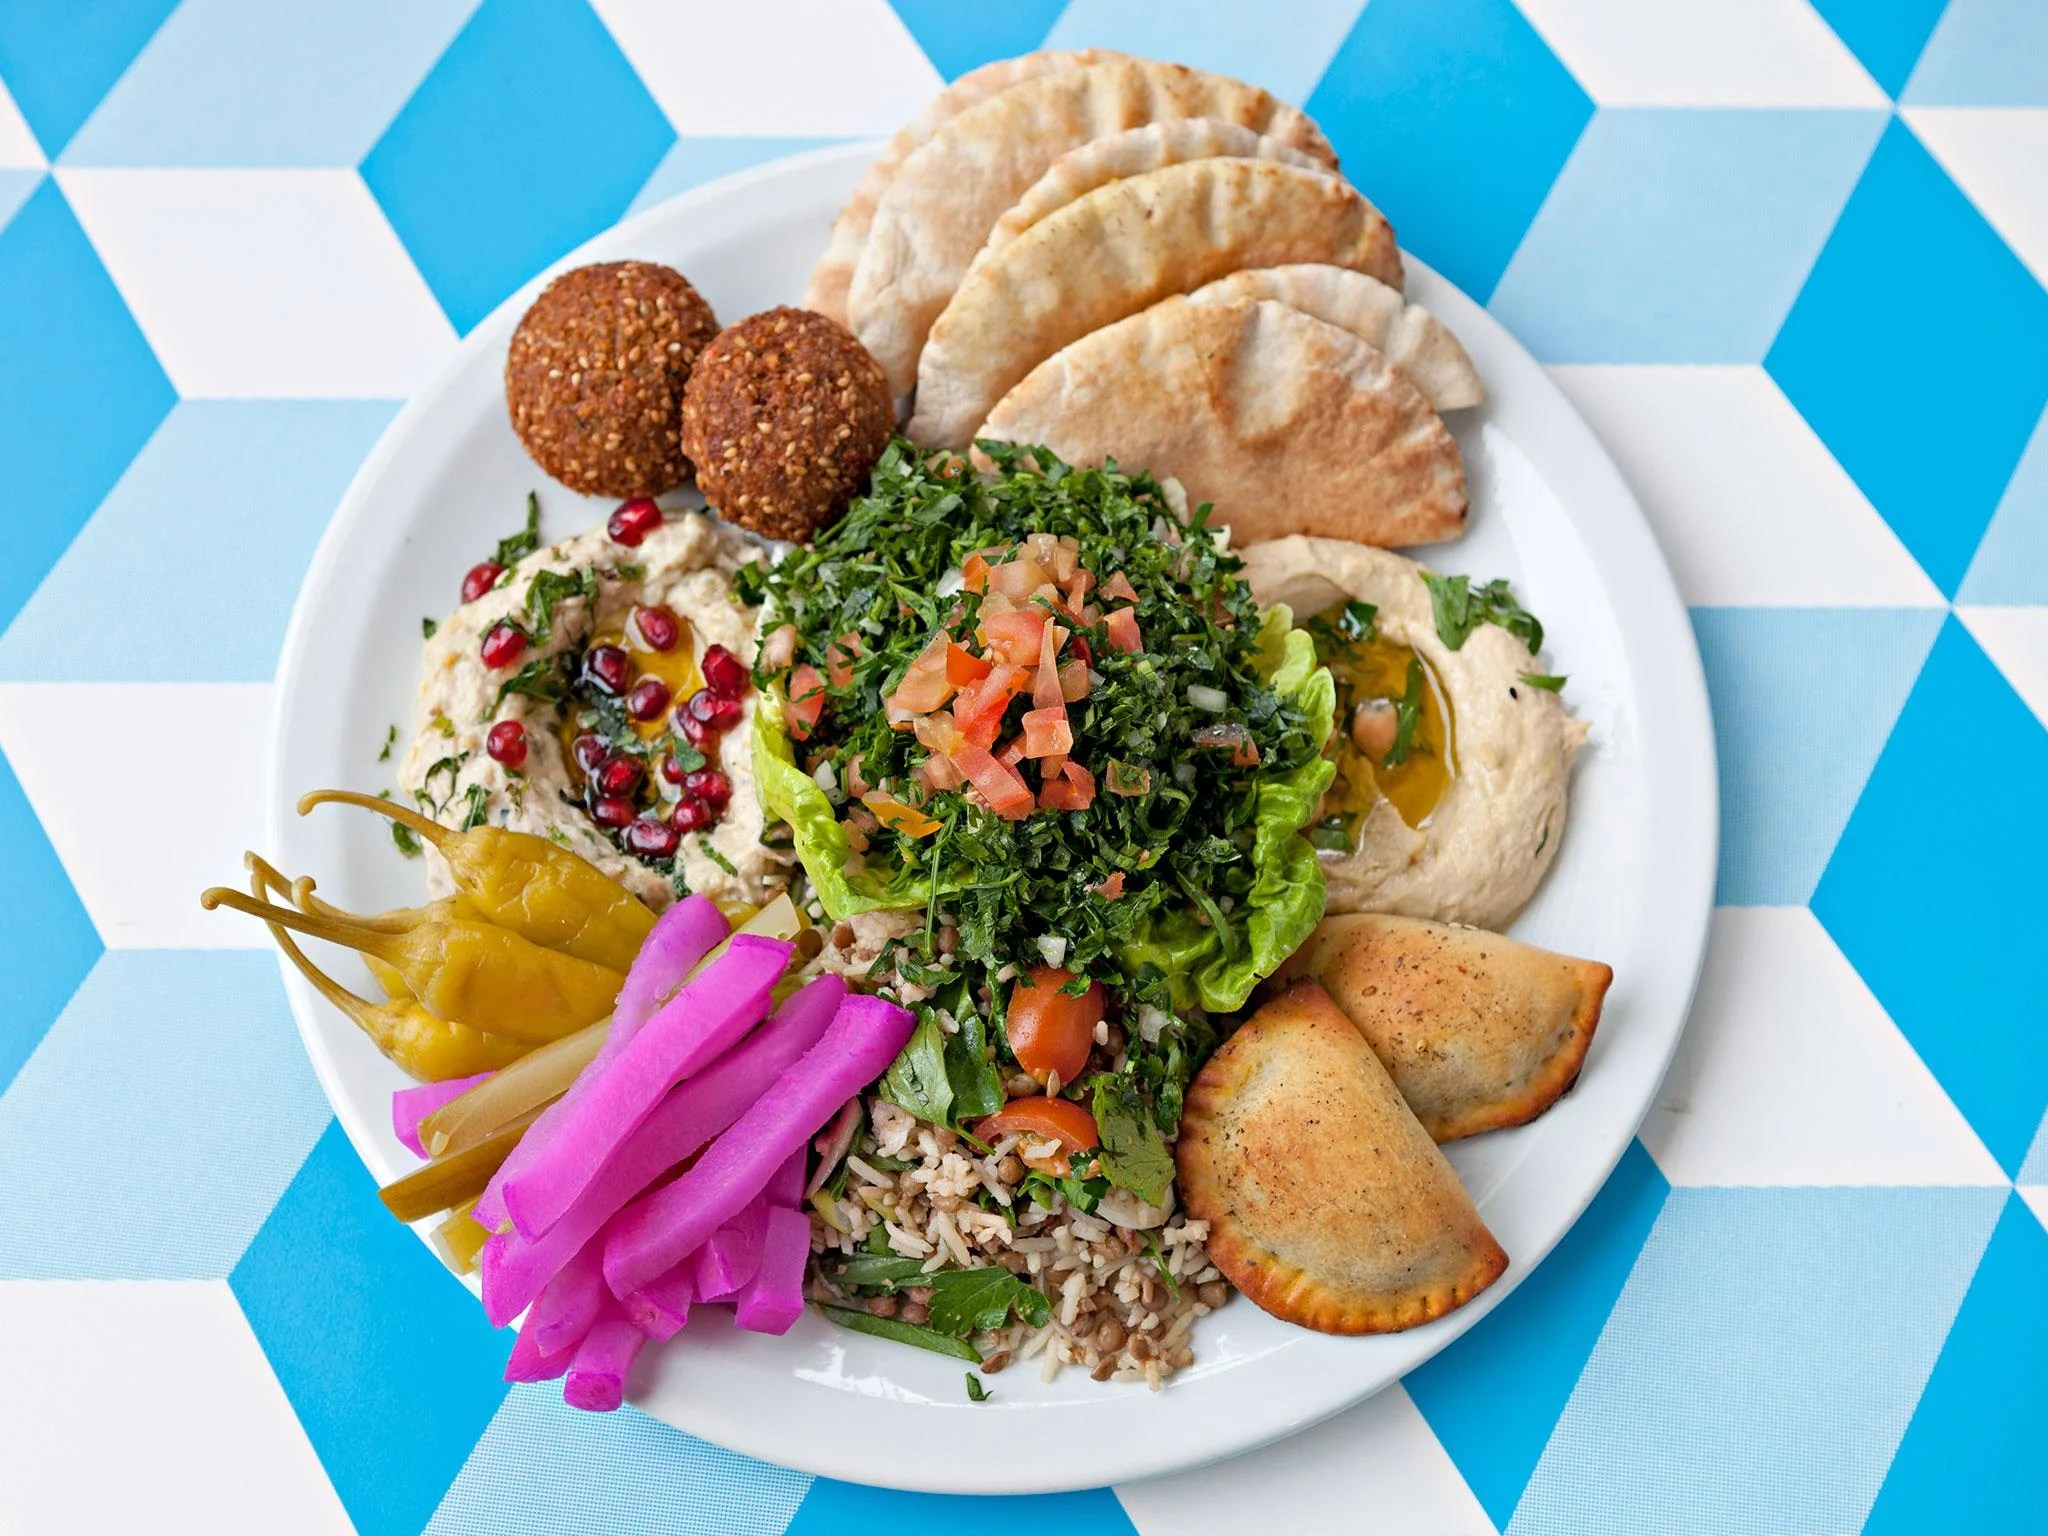 La Cuisine Libanaise Salma Hage International Falafel Day How The Middle Eatern Mezze Found Its